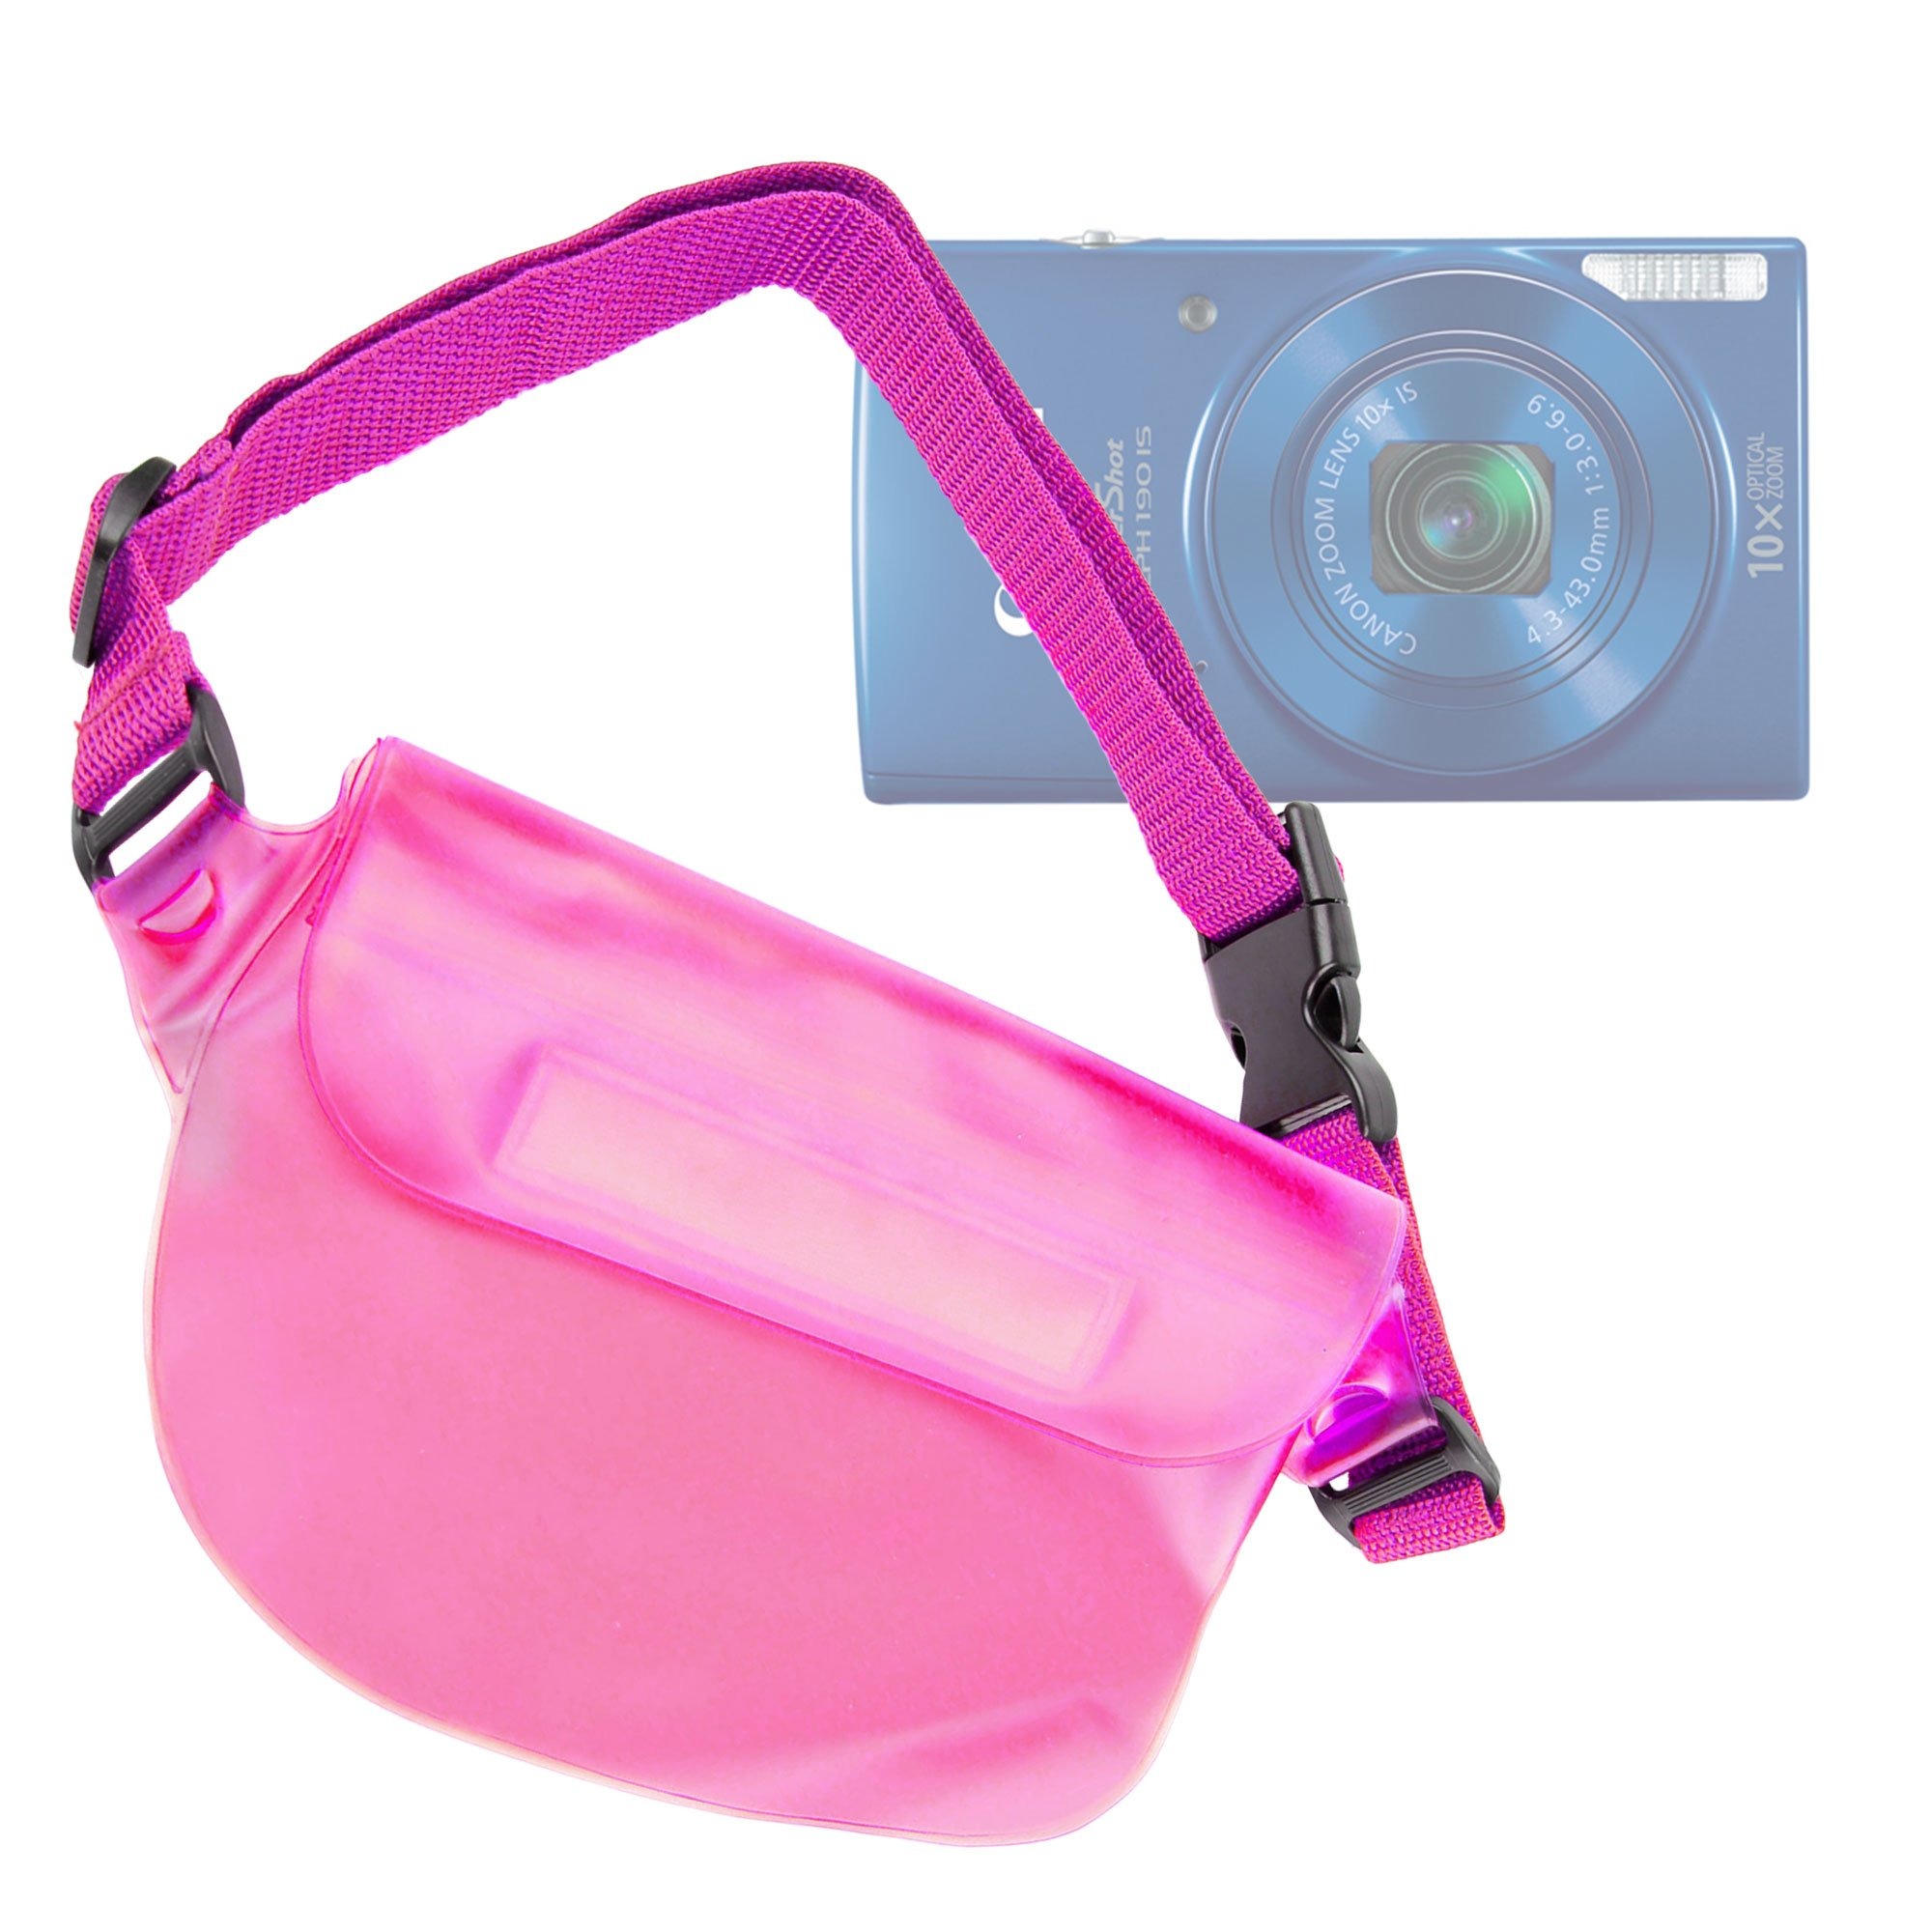 DURAGADGET Pink Water-Resistant Pouch-Style Case with Strap - Compatible with the NEW Canon ELPH 360 HS / Canon Powershot ELPH 180 / Canon Powershot ELPH 190 IS Cameras